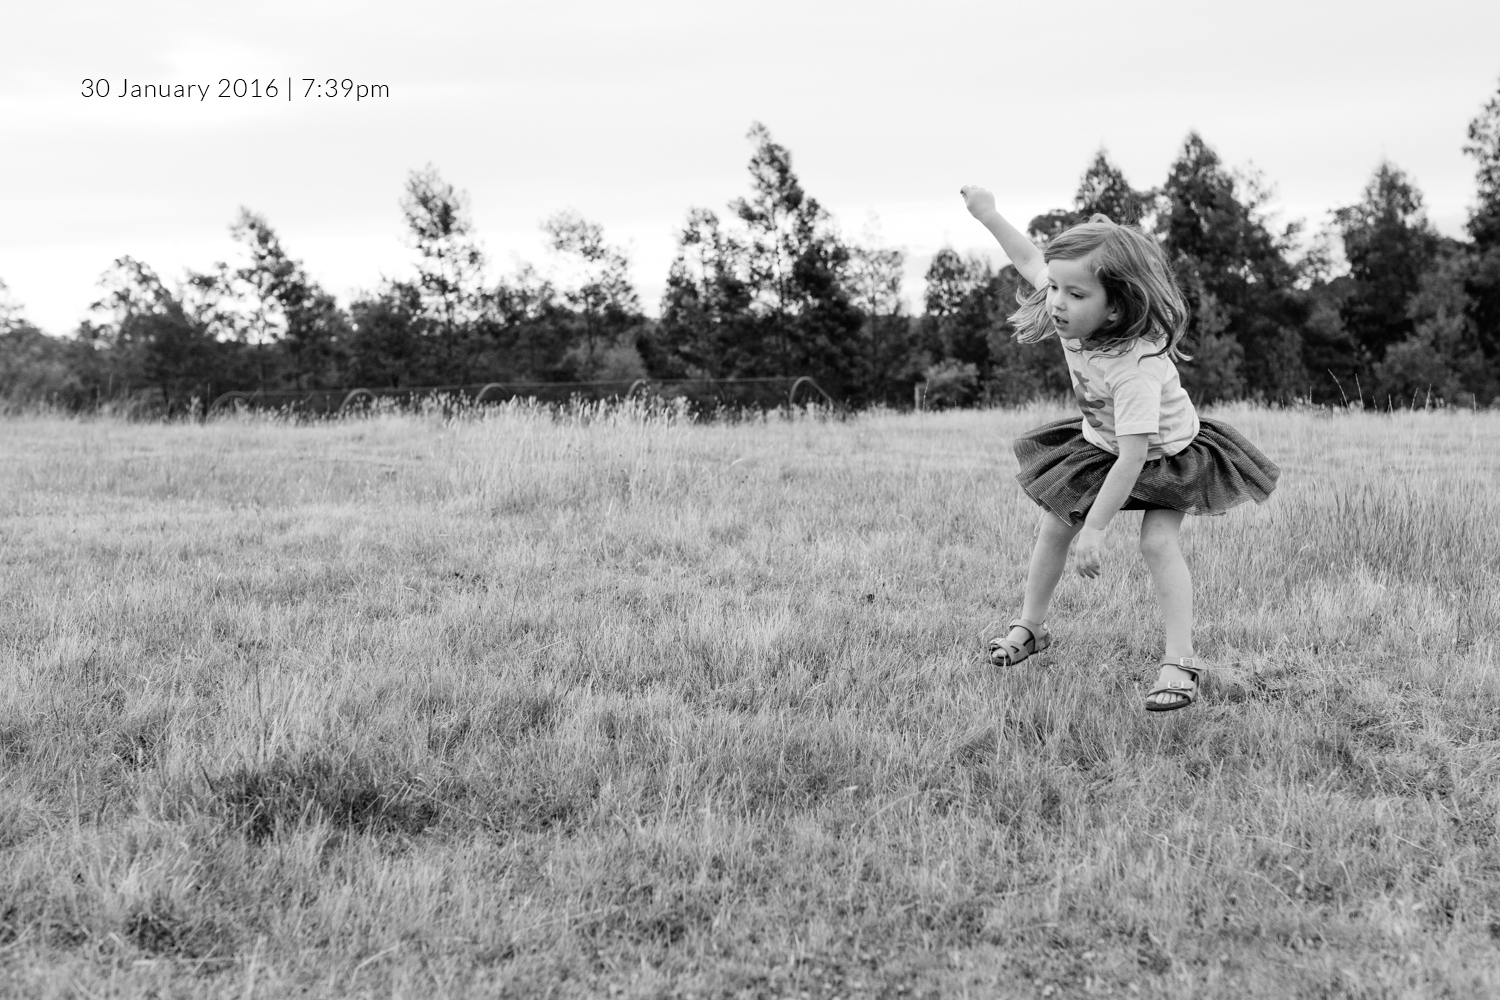 girl-jumping-family-photography-photo-a-day-project-day-30.jpg